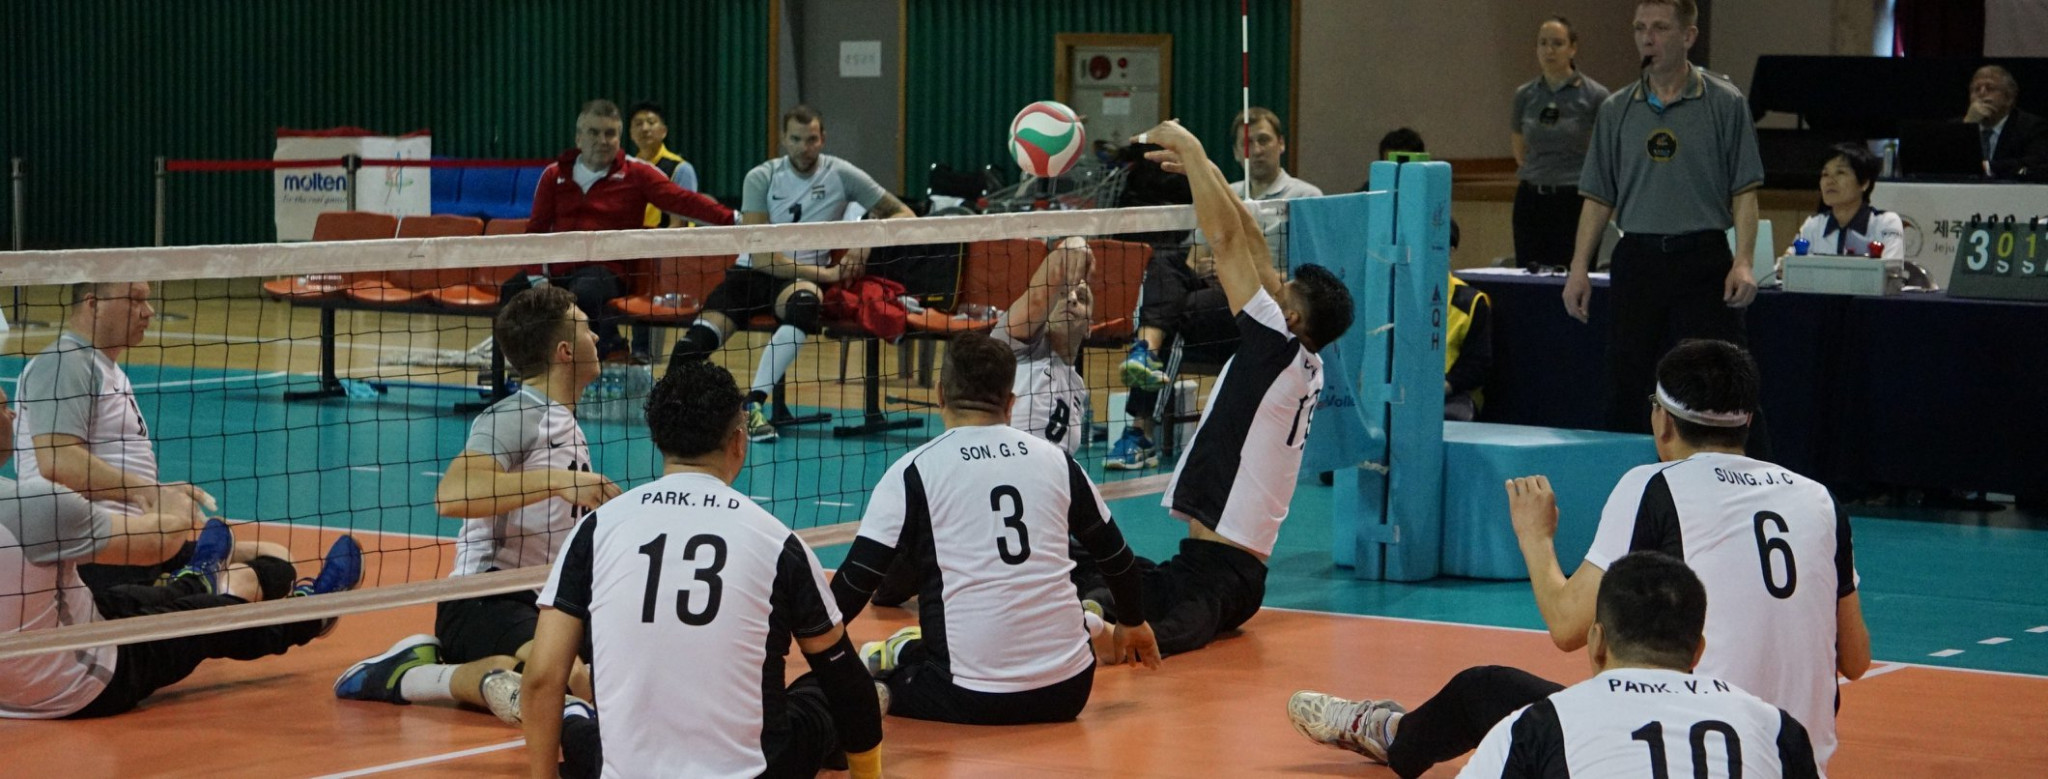 Hosts South Korea secured bronze in the fnial qualifying event for the 2018 Sitting Volleyball World Championships ©World ParaVolley/Facebook